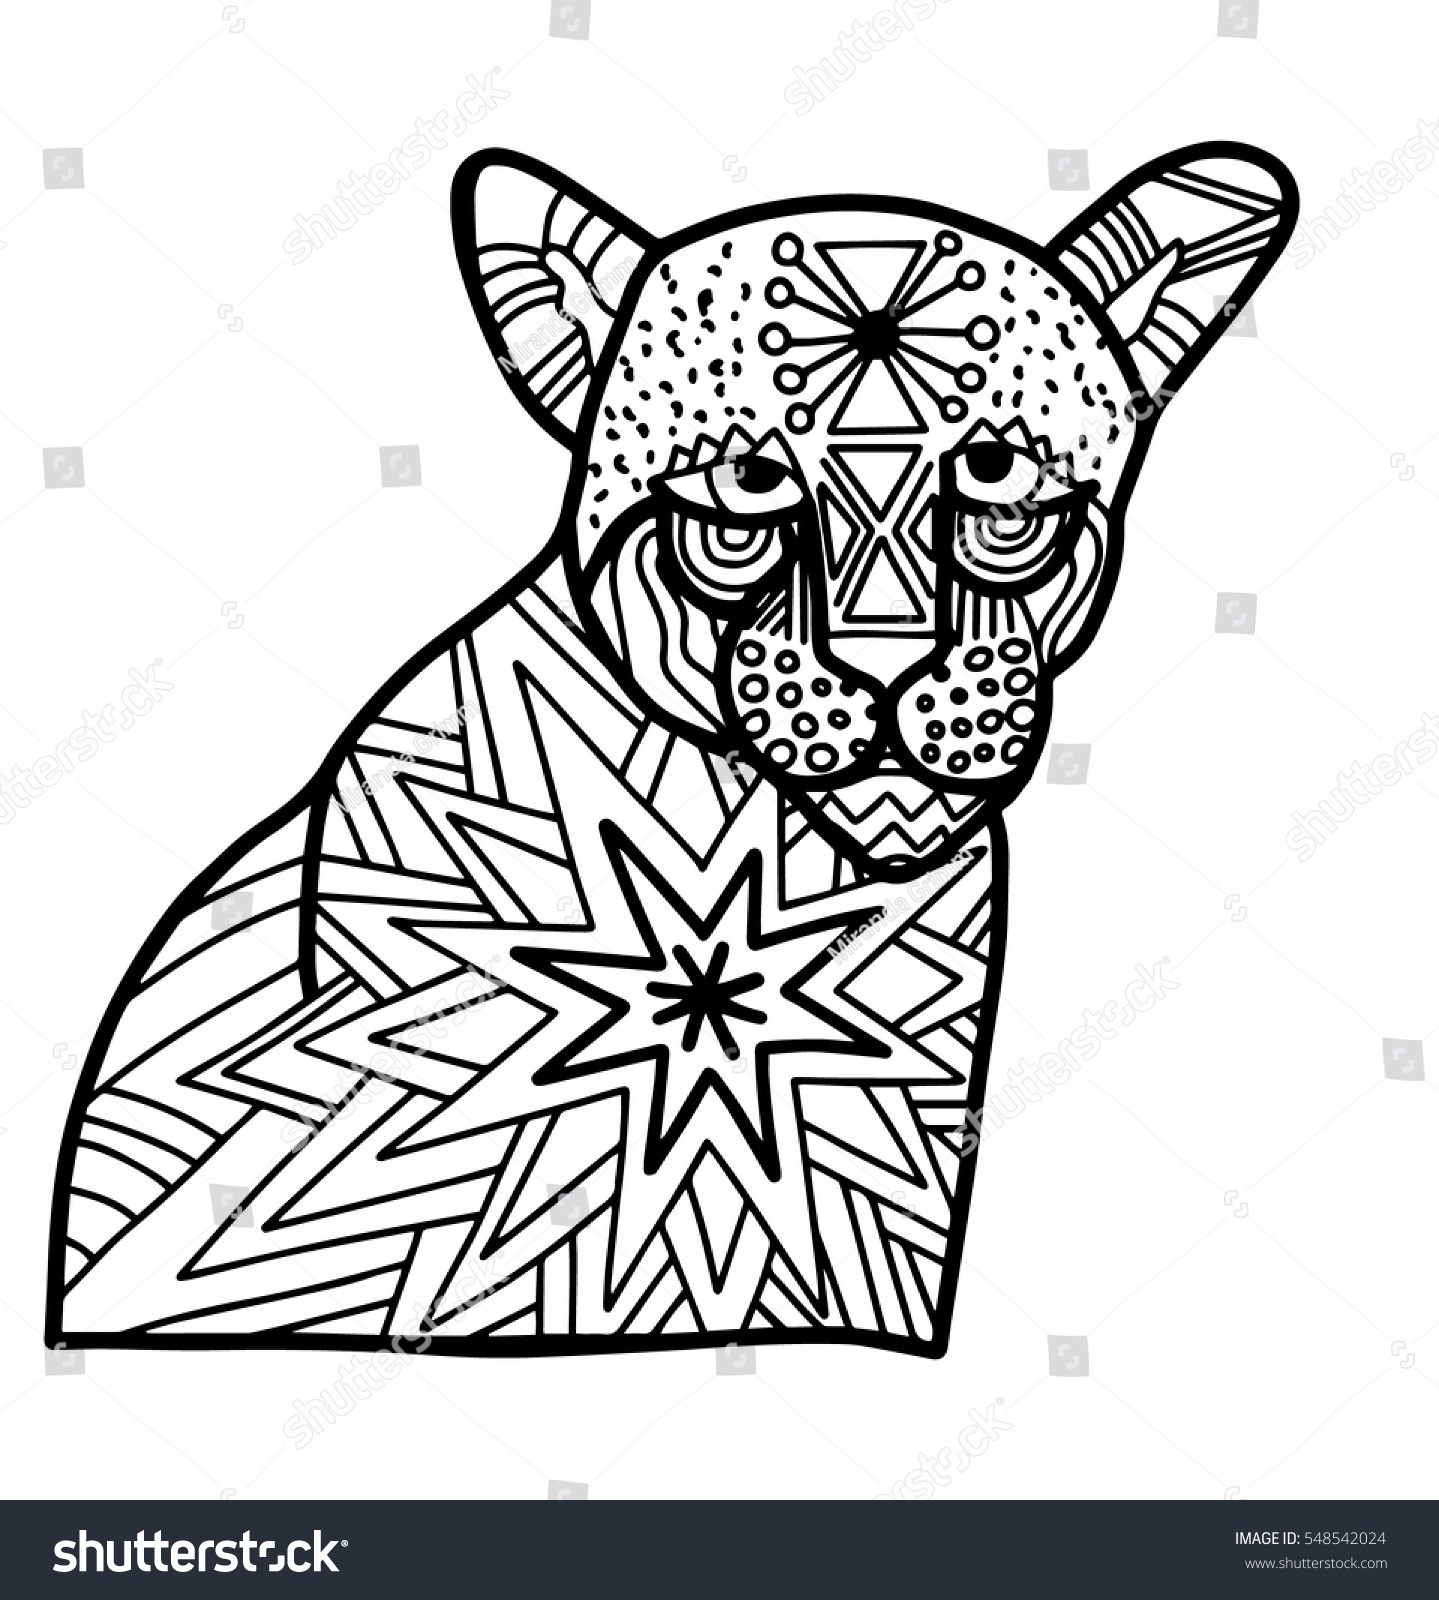 panther doodle blank coloring page relaxation stock vector royalty